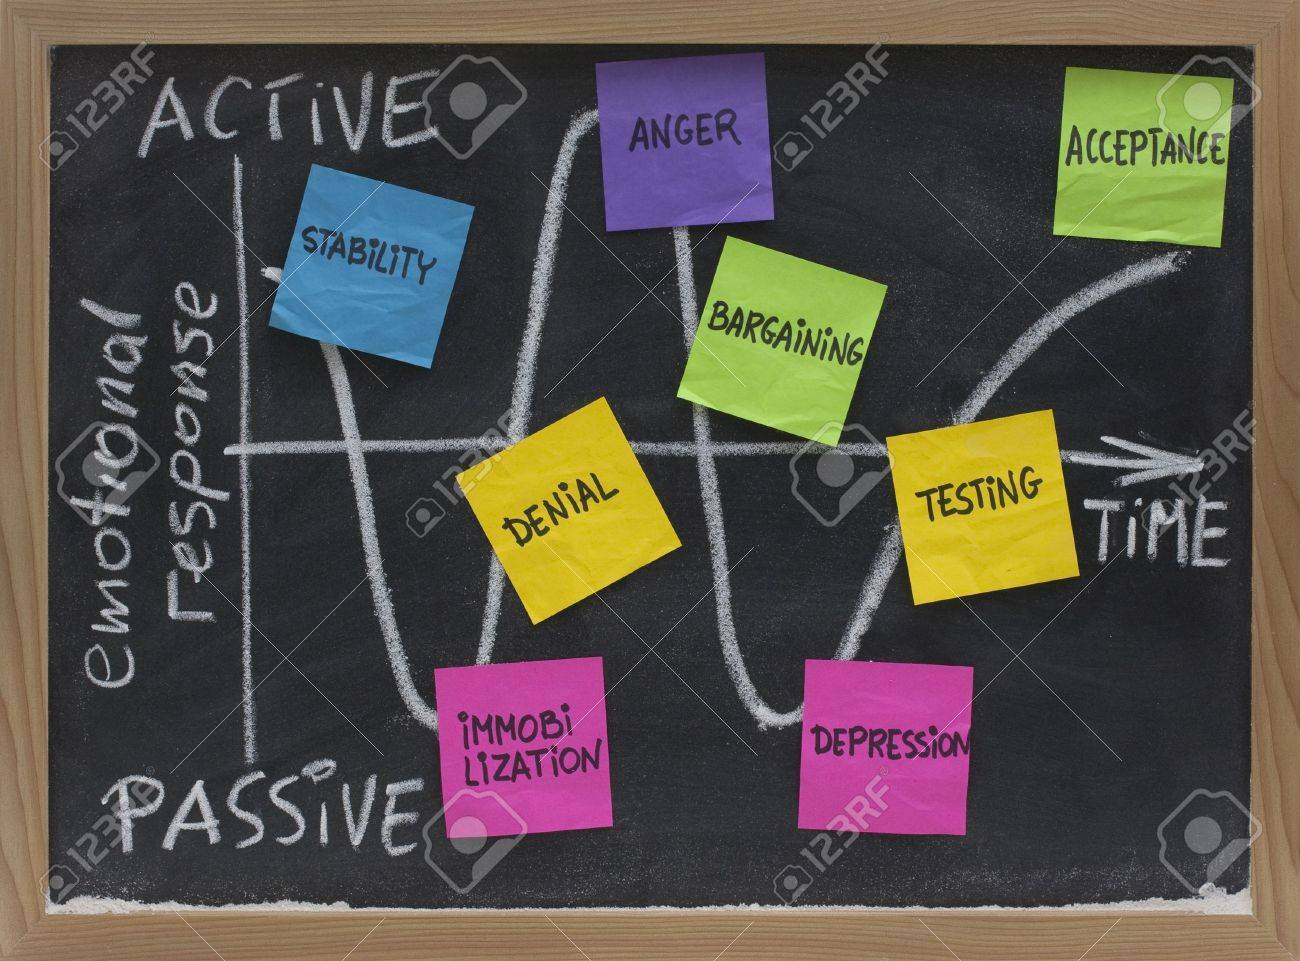 Kubler-Ross grief cycle concept (active, passive emotional response phases) sketched on blackboard with white chalk and sticky notes, Stock Photo - 5139119